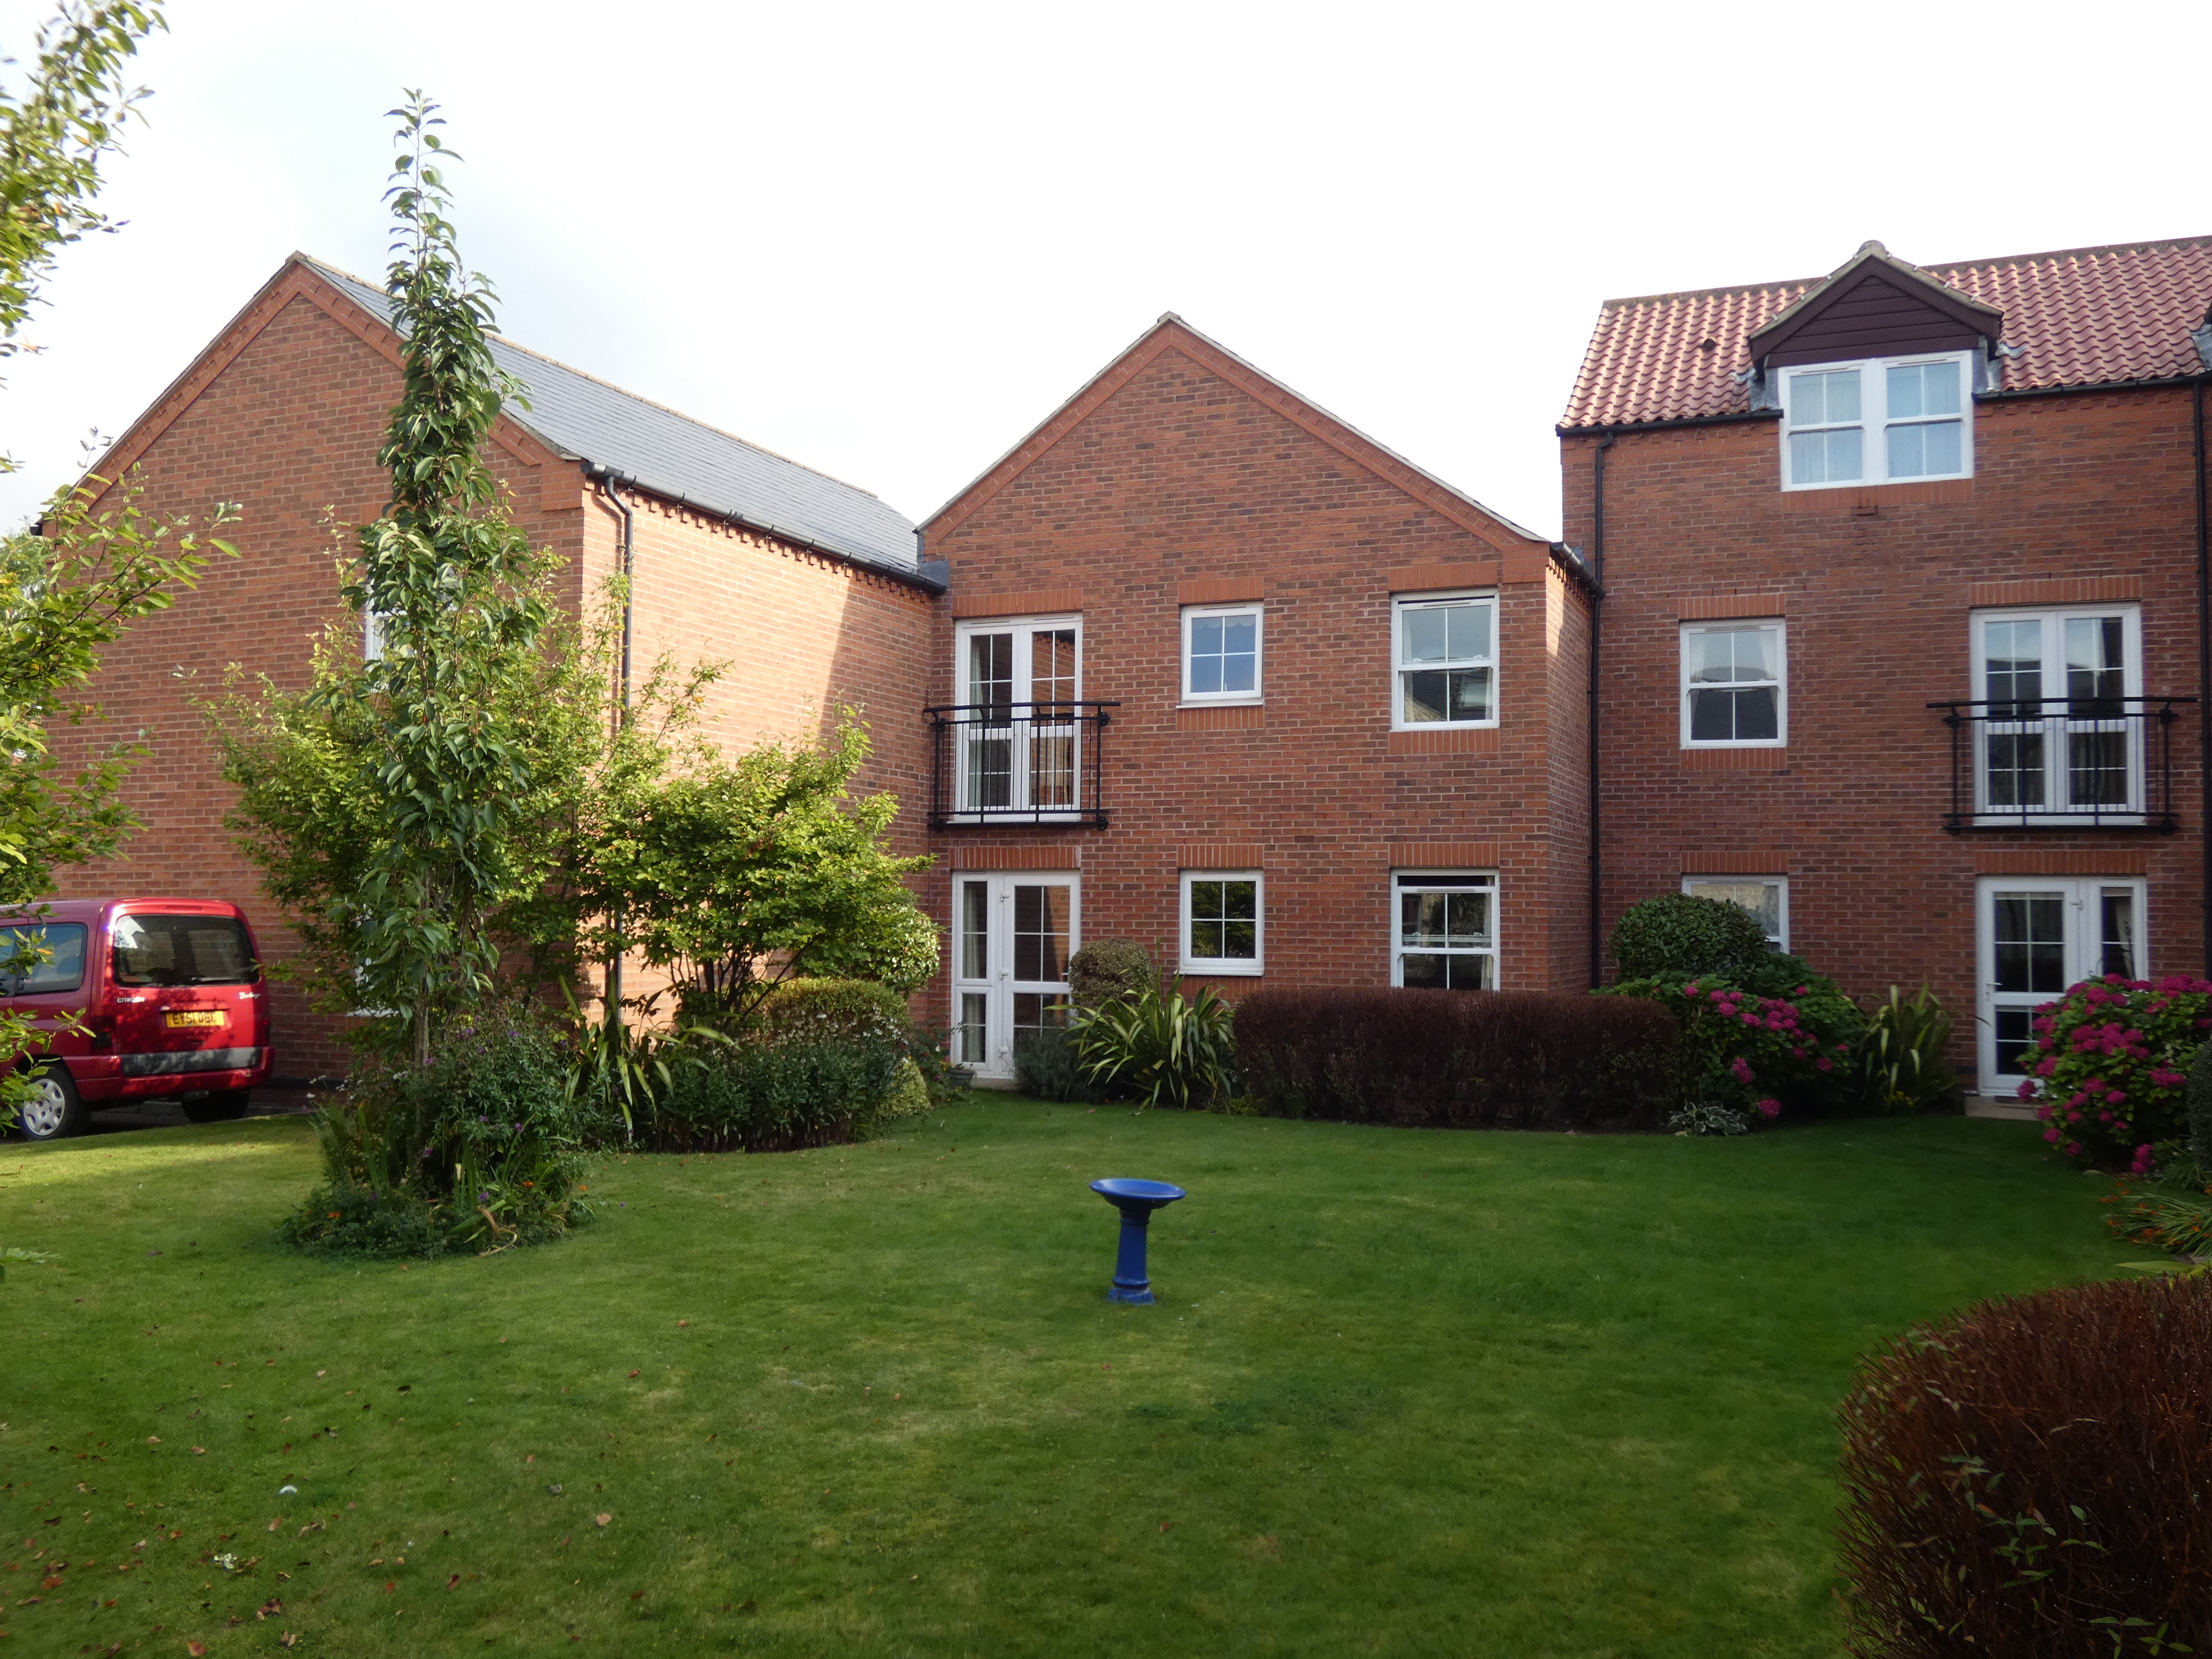 22 Greendale Court, Bedale